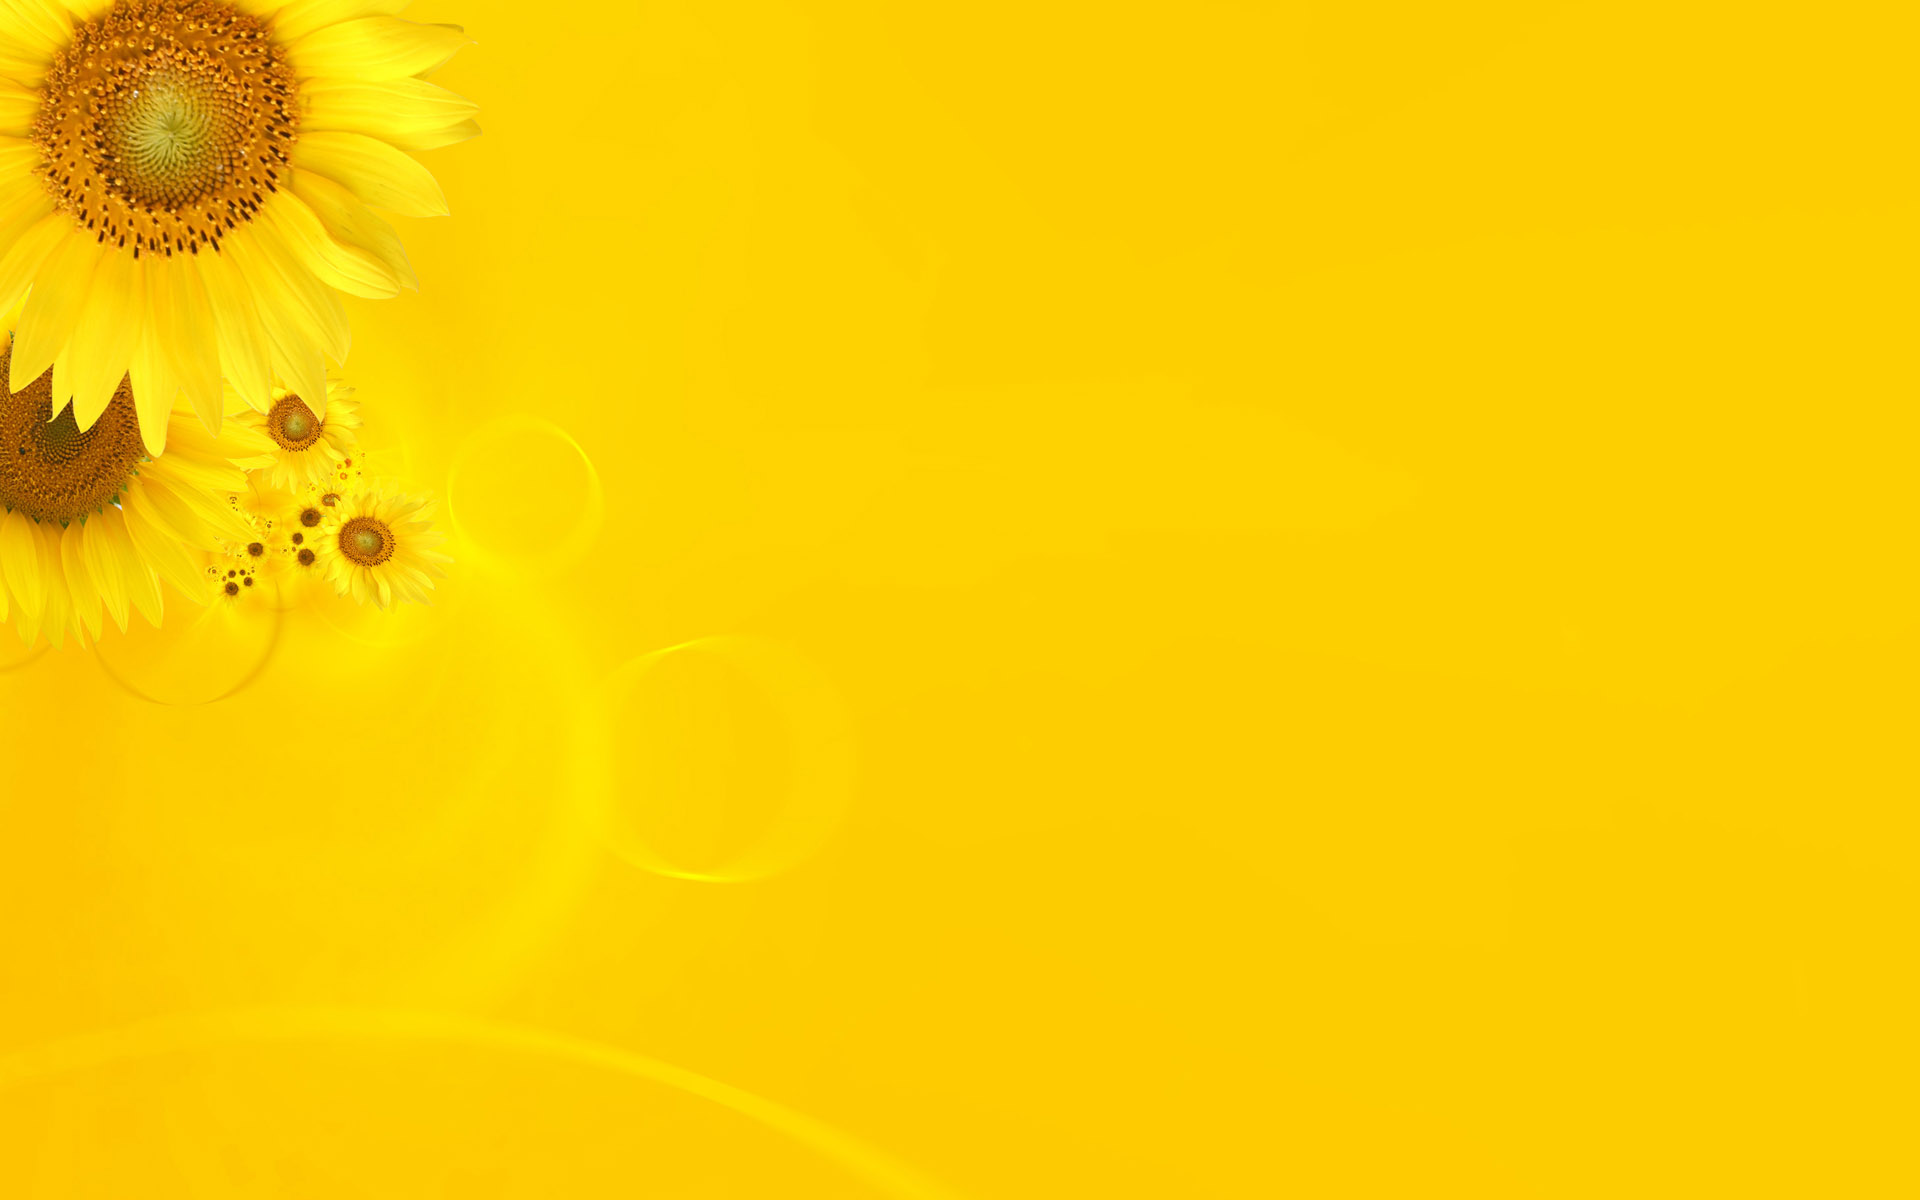 yellow flower backgrounds - photo #12